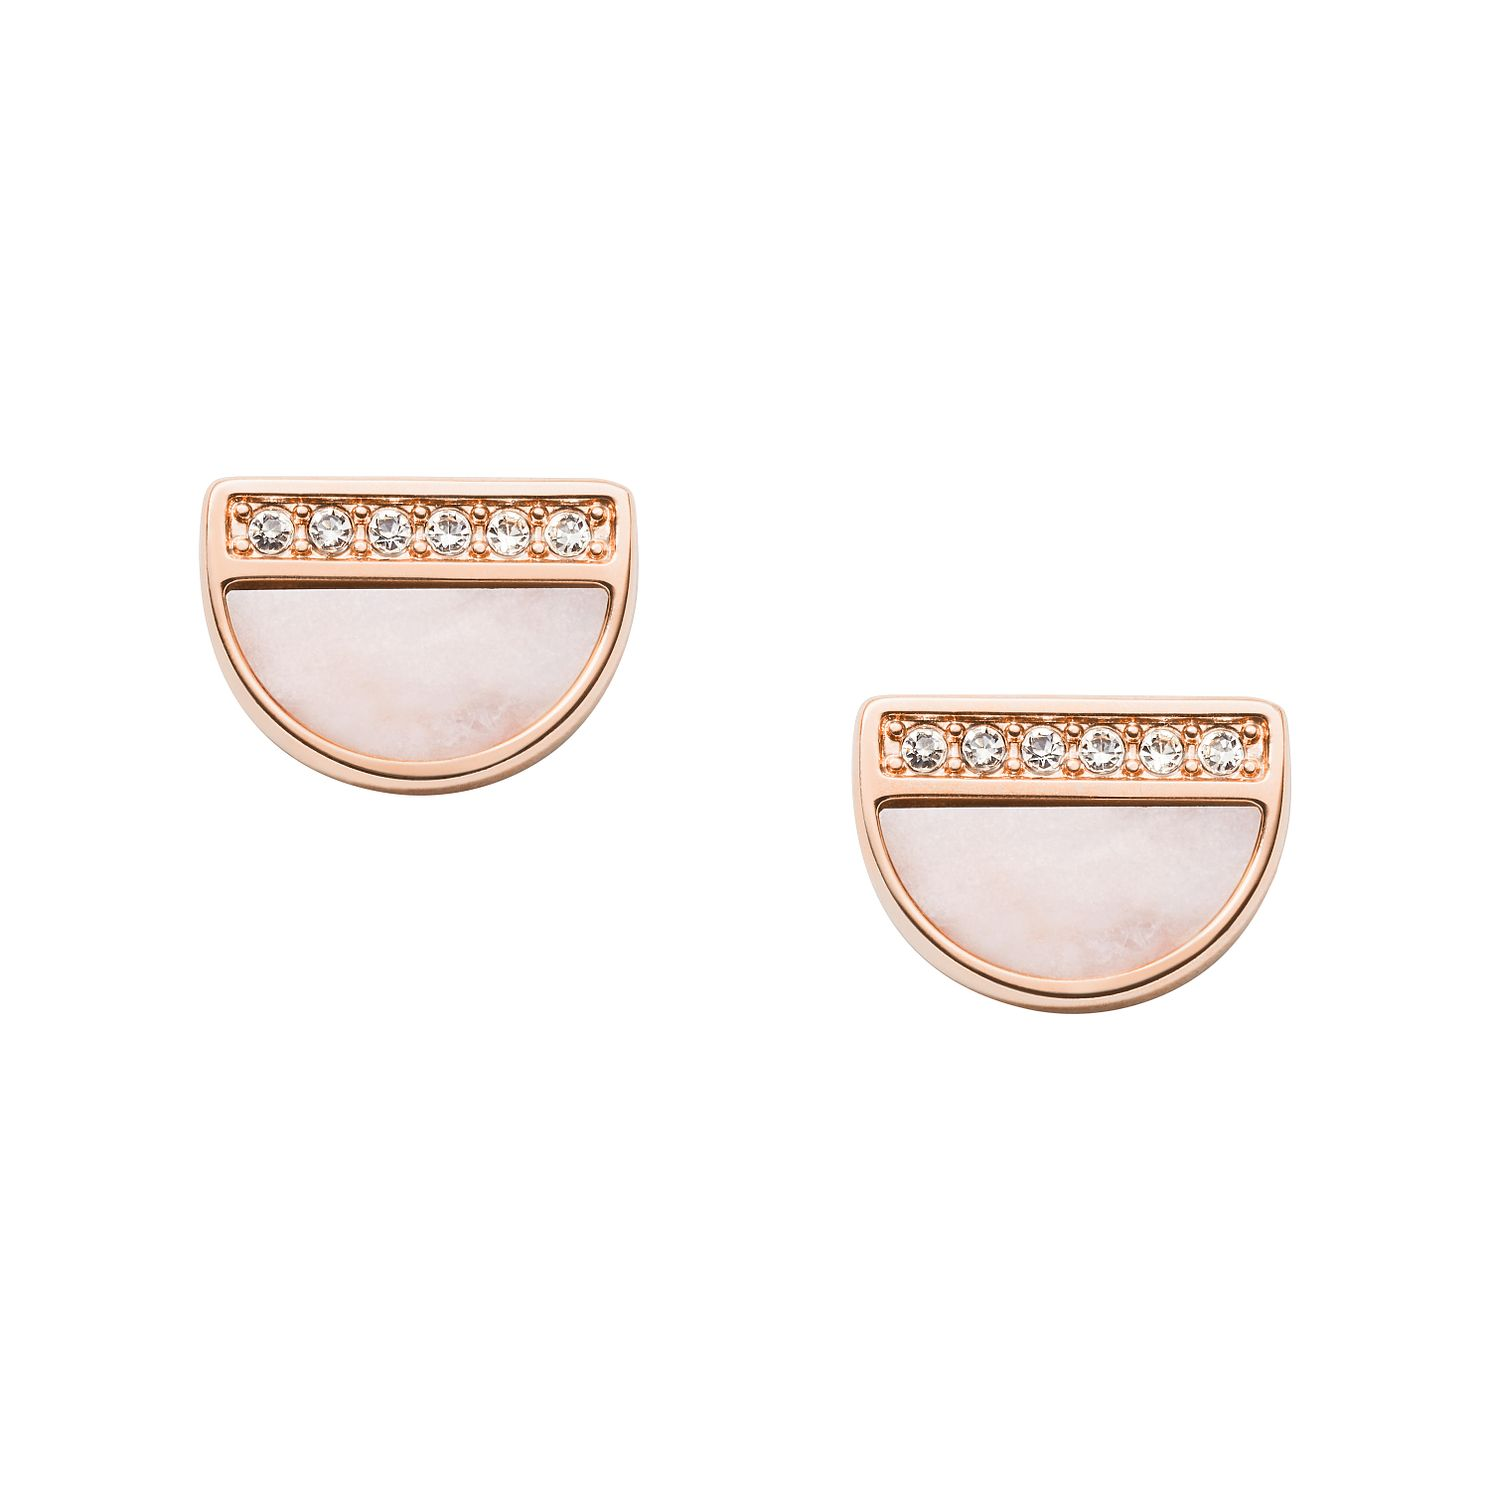 Fossil Rose Gold Tone Cubic Zirconia Duo Half Moon Earrings - Product number 2471388